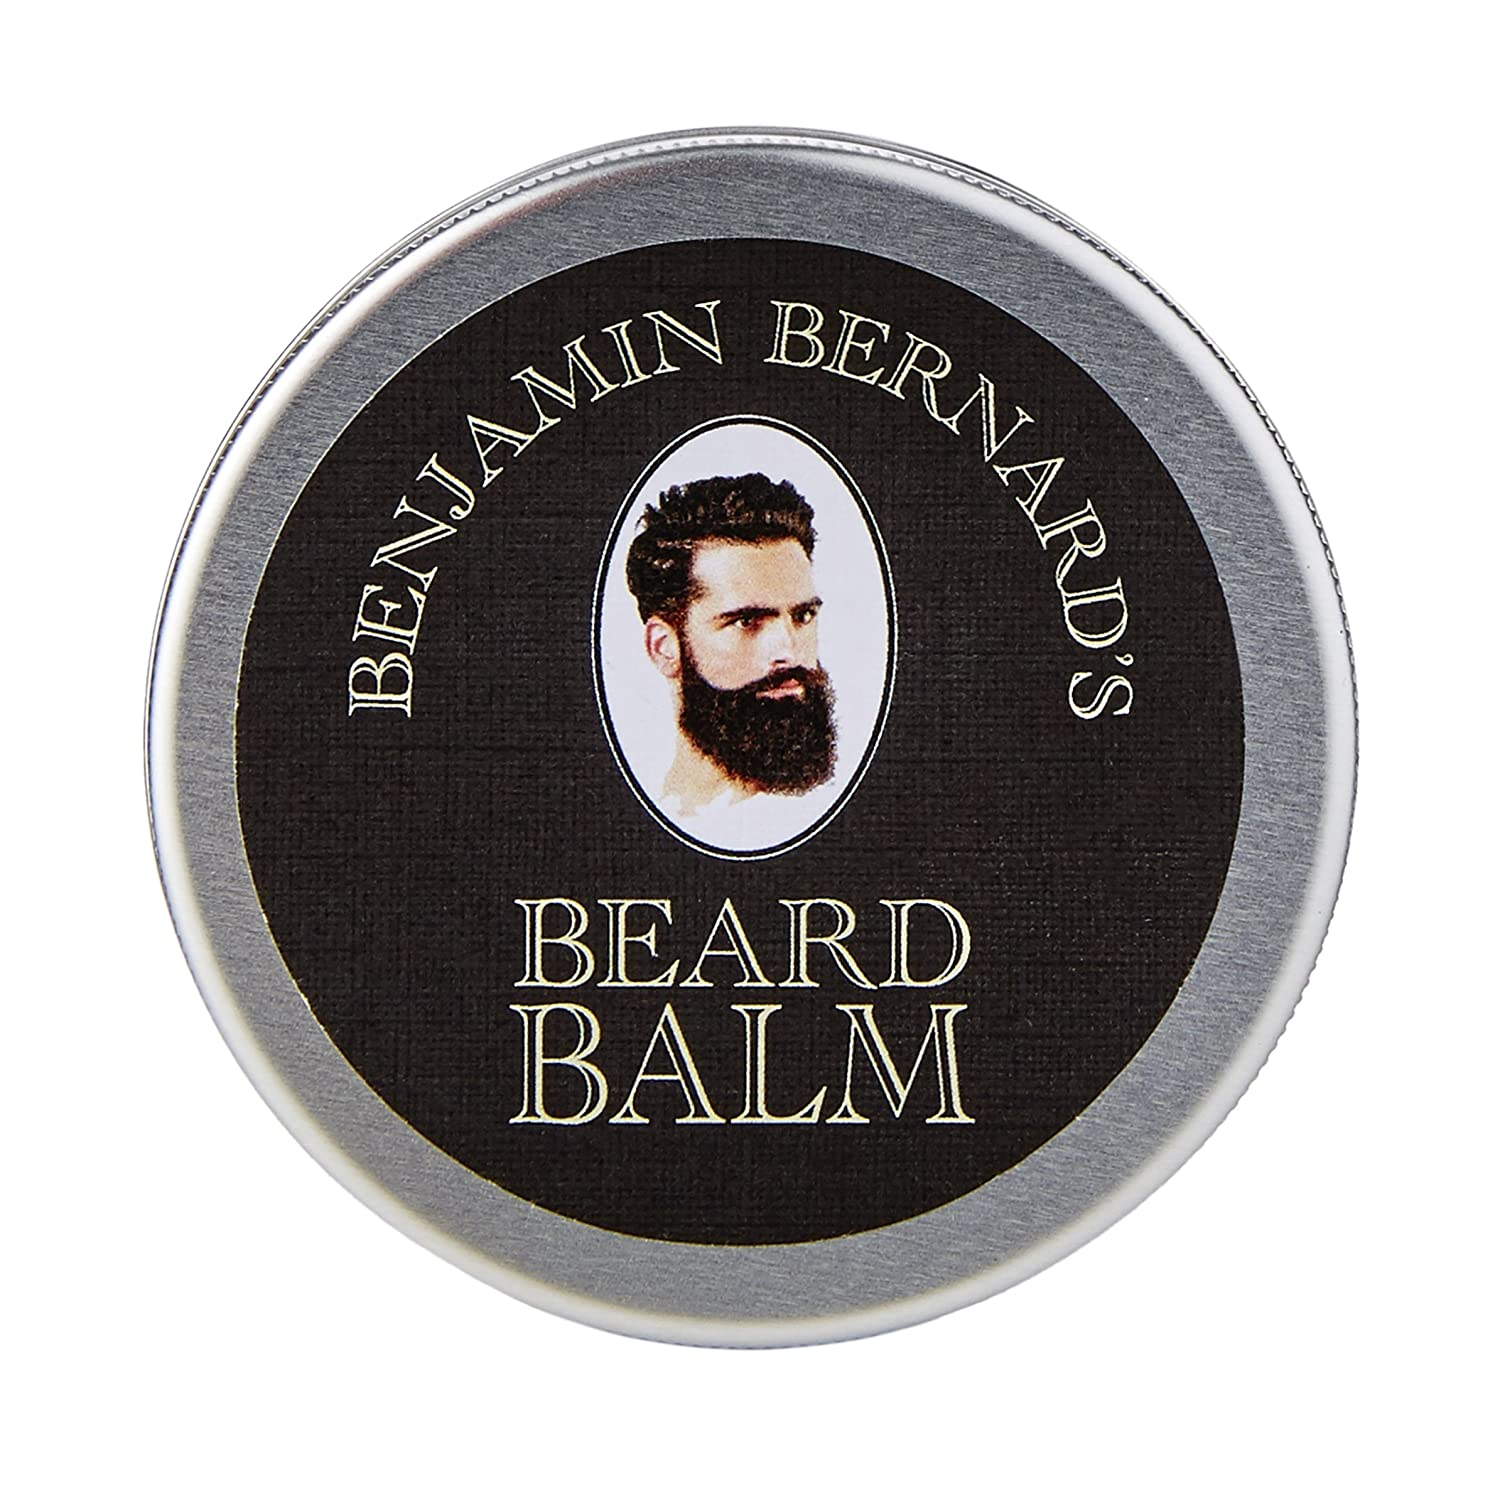 Beard Balm - Beard Wax by Benjamin Bernard - Encourages Healthy Beard Growth, Beard Pomade for Lasting Style - Lightly Scented Beard Care - 100ml Second Glance Beauty